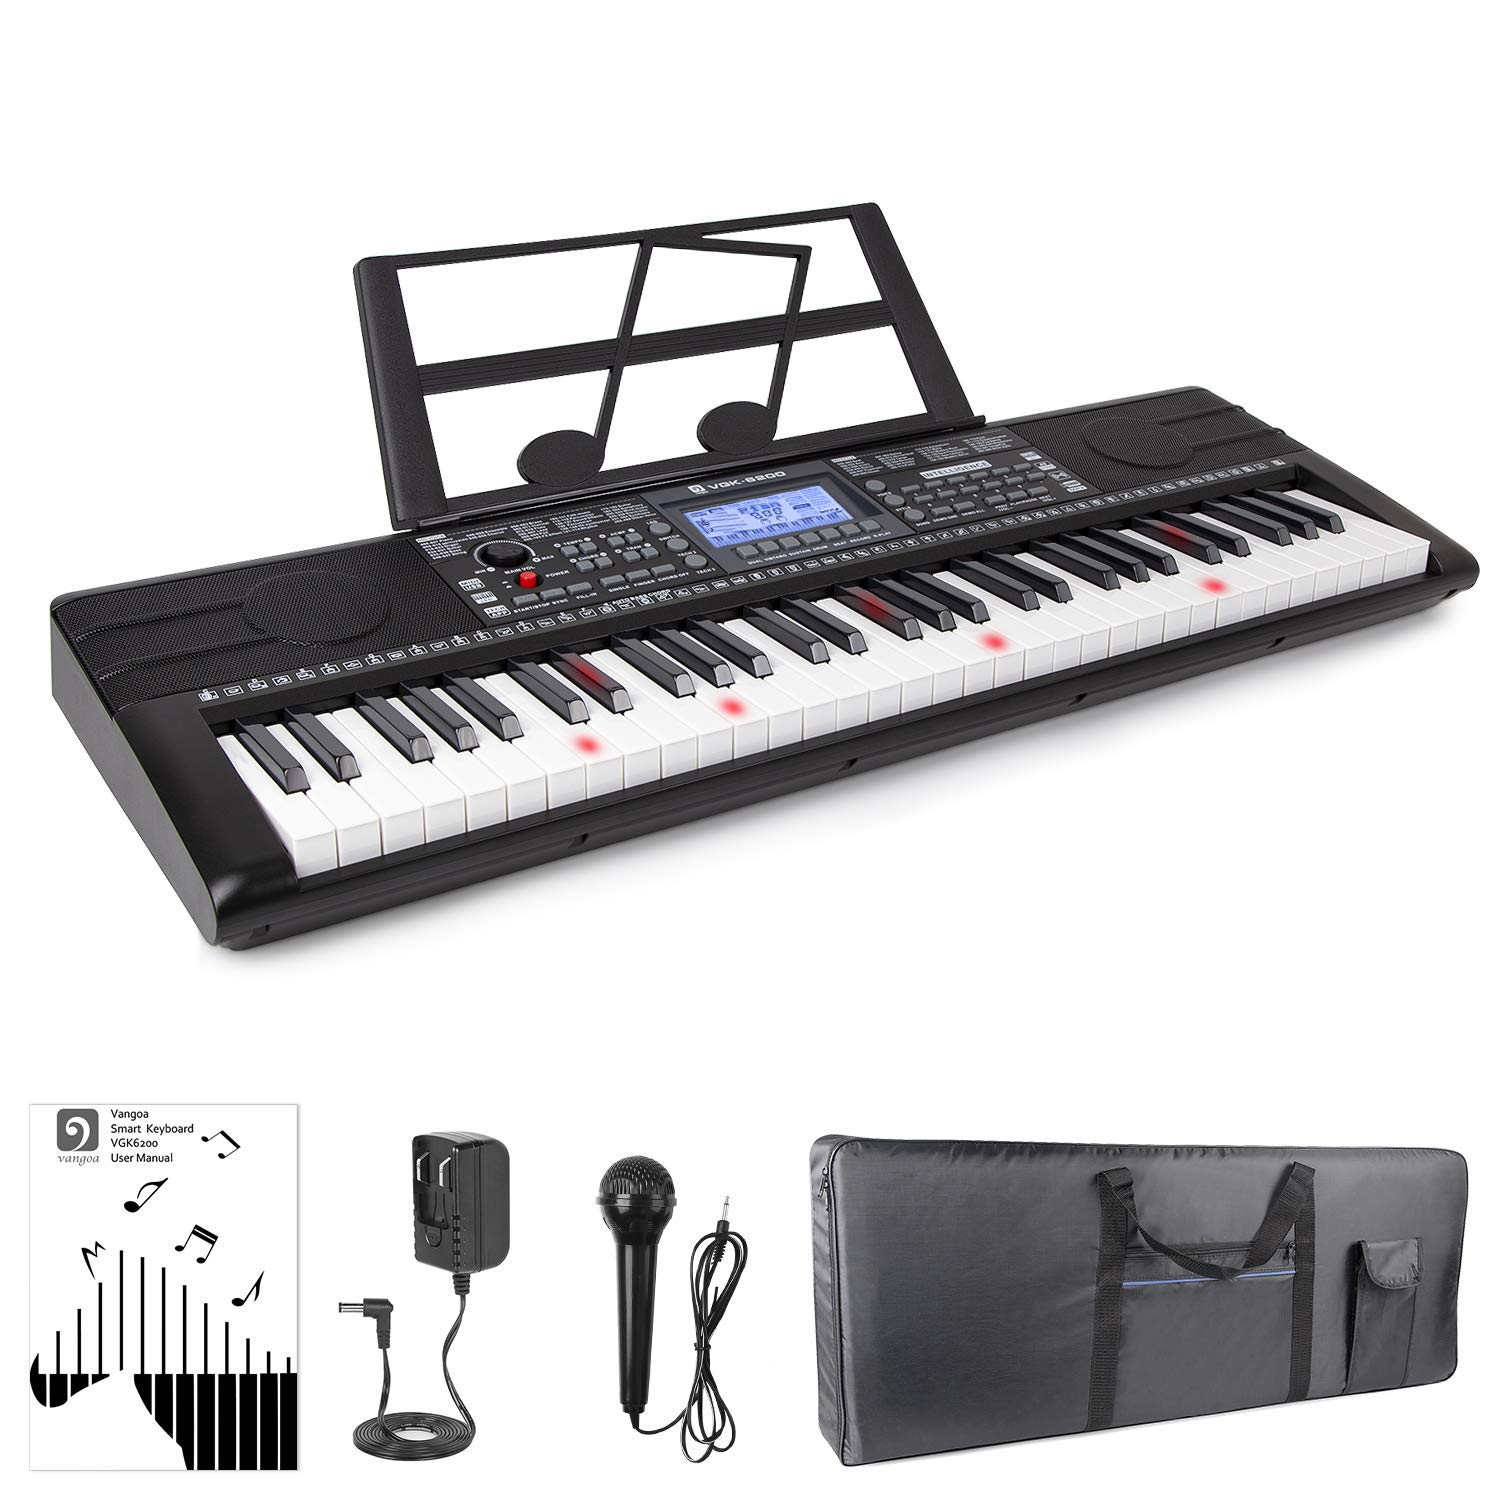 Vangoa Vangoa VGK6200 61 Lighted Keys Electronic Piano Keyboard with LCD Display, Piano Gig Bag